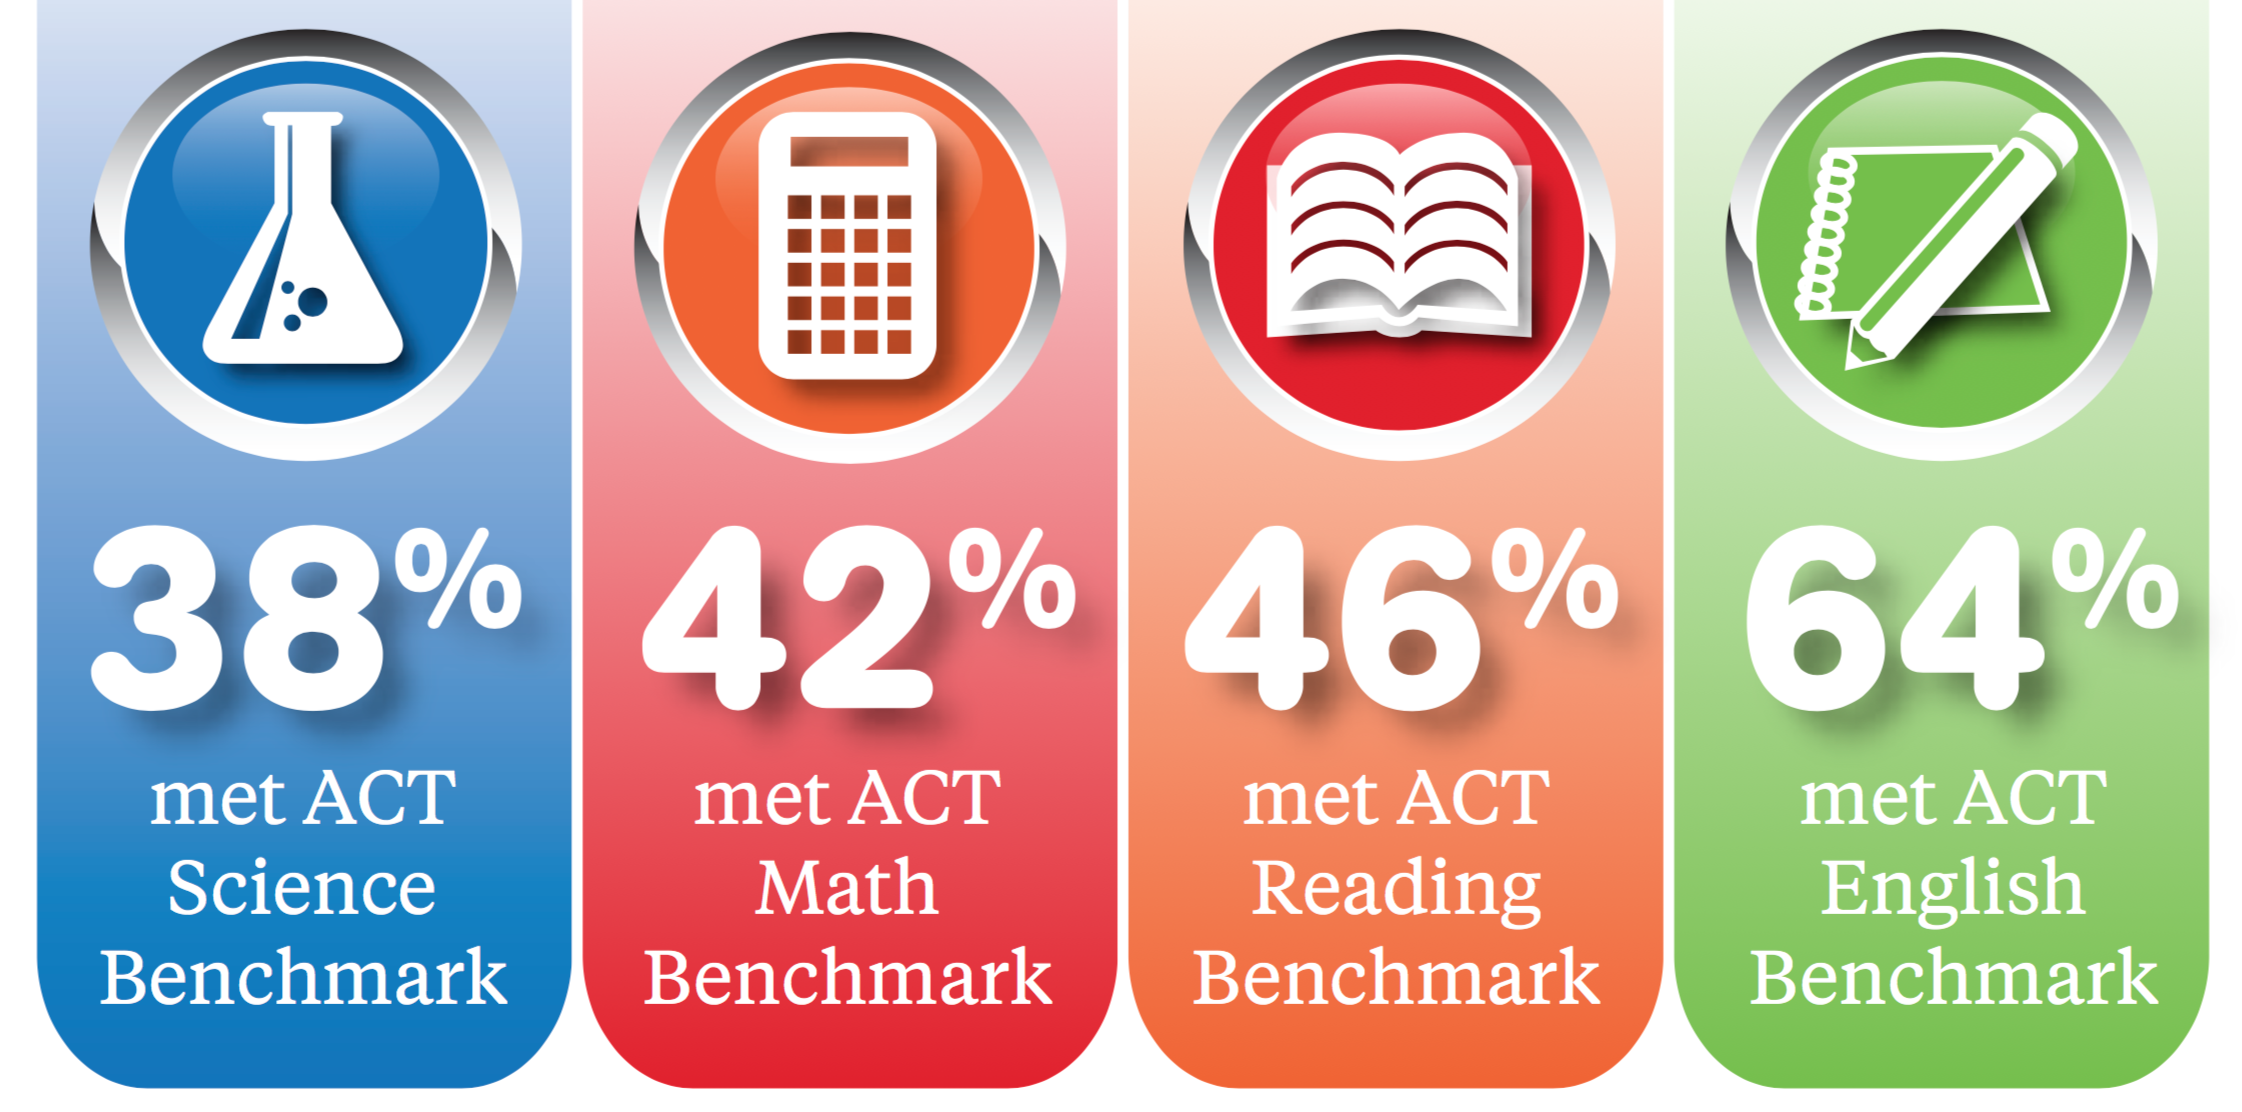 http://www.act.org/newsroom/data/2015/pdf/CCCR2015-InfoGraphic.pdf